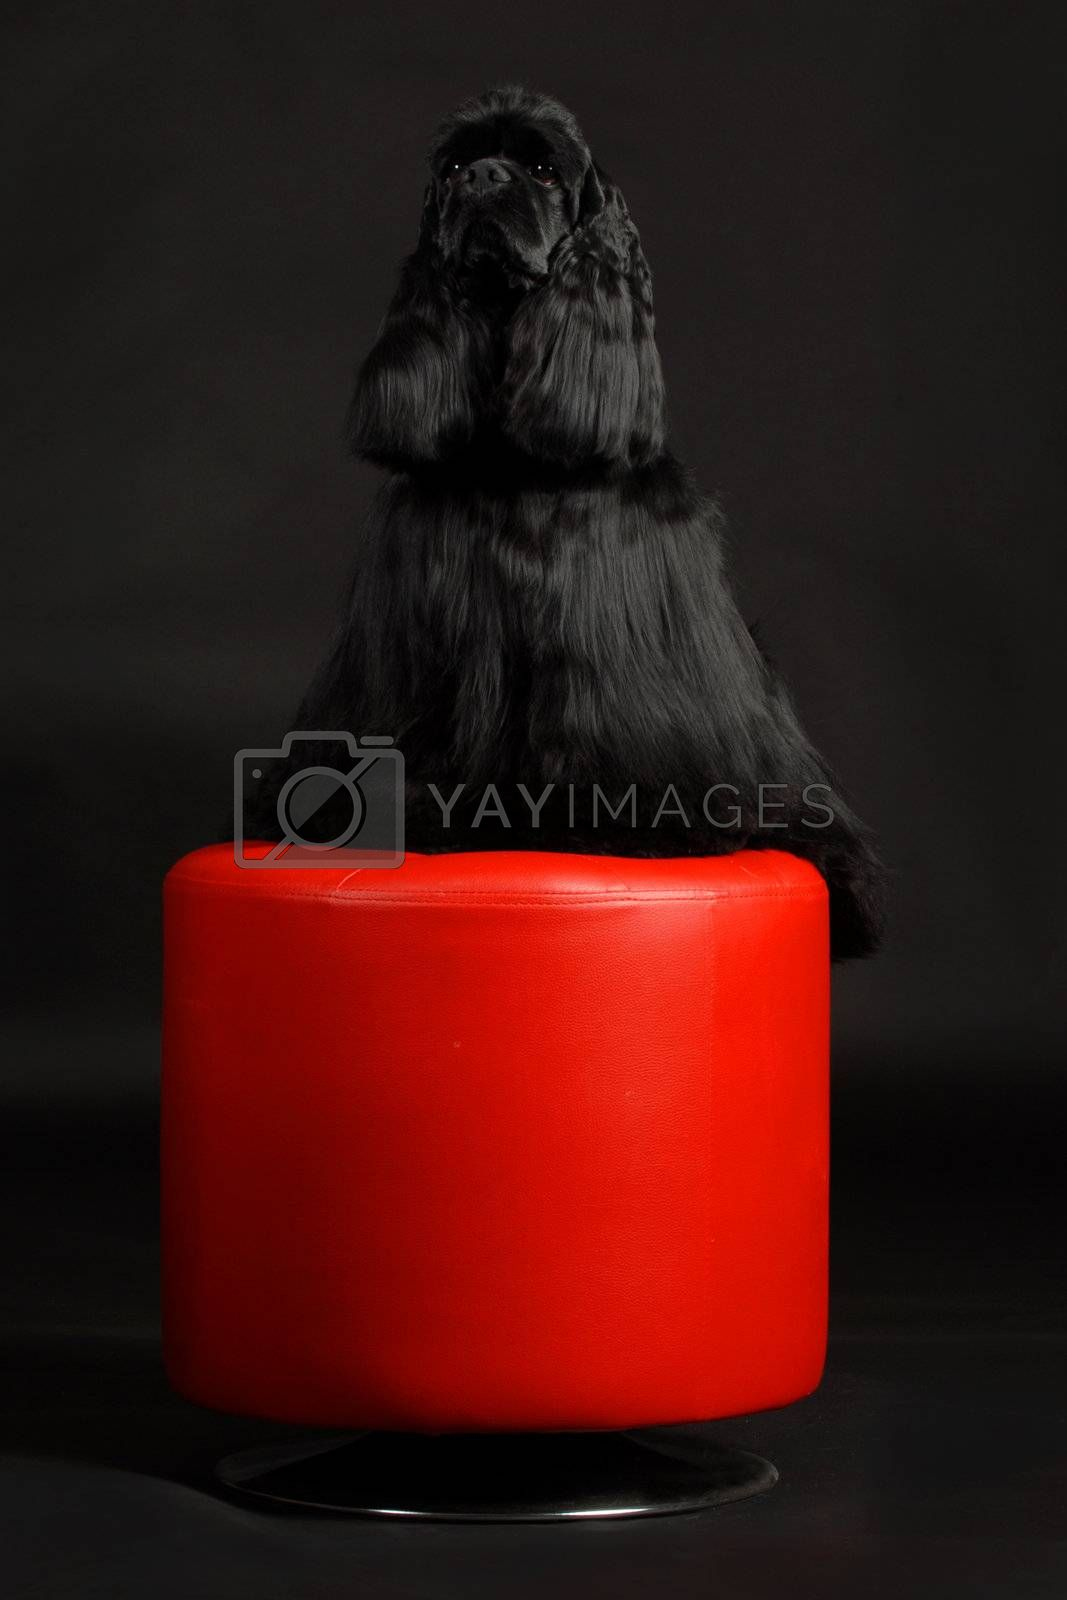 cocker spaniel sitting on a red stool on a black background